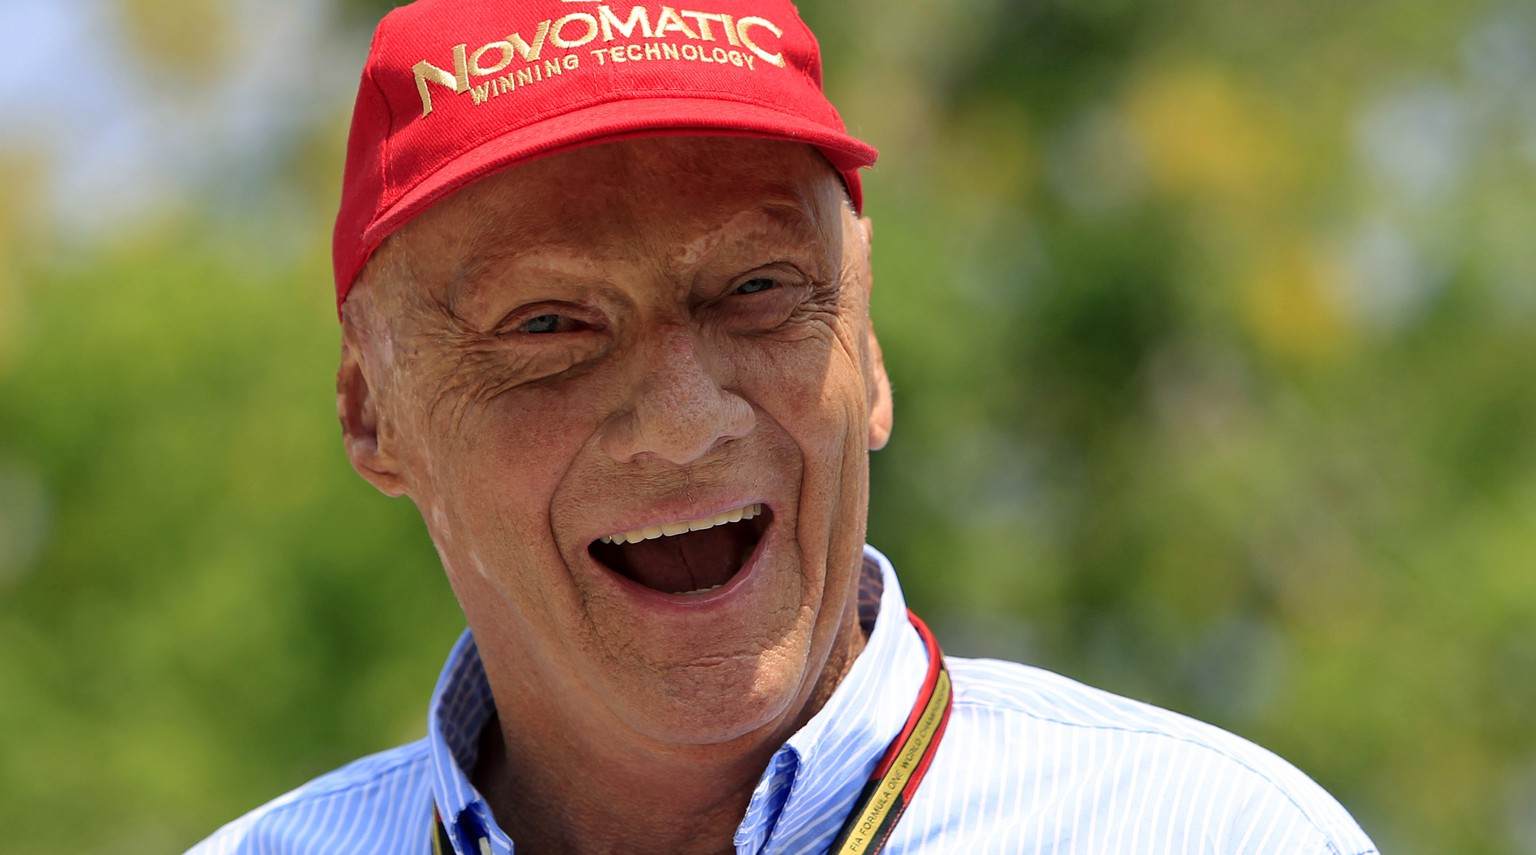 Former Formula One driver Niki Lauda of Austria laughs as he arrives at the paddock before the Malaysian Formula One Grand Prix at Sepang International Circuit in Sepang, Malaysia, Sunday, March 30, 2014. (AP Photo/Lai Seng Sin)